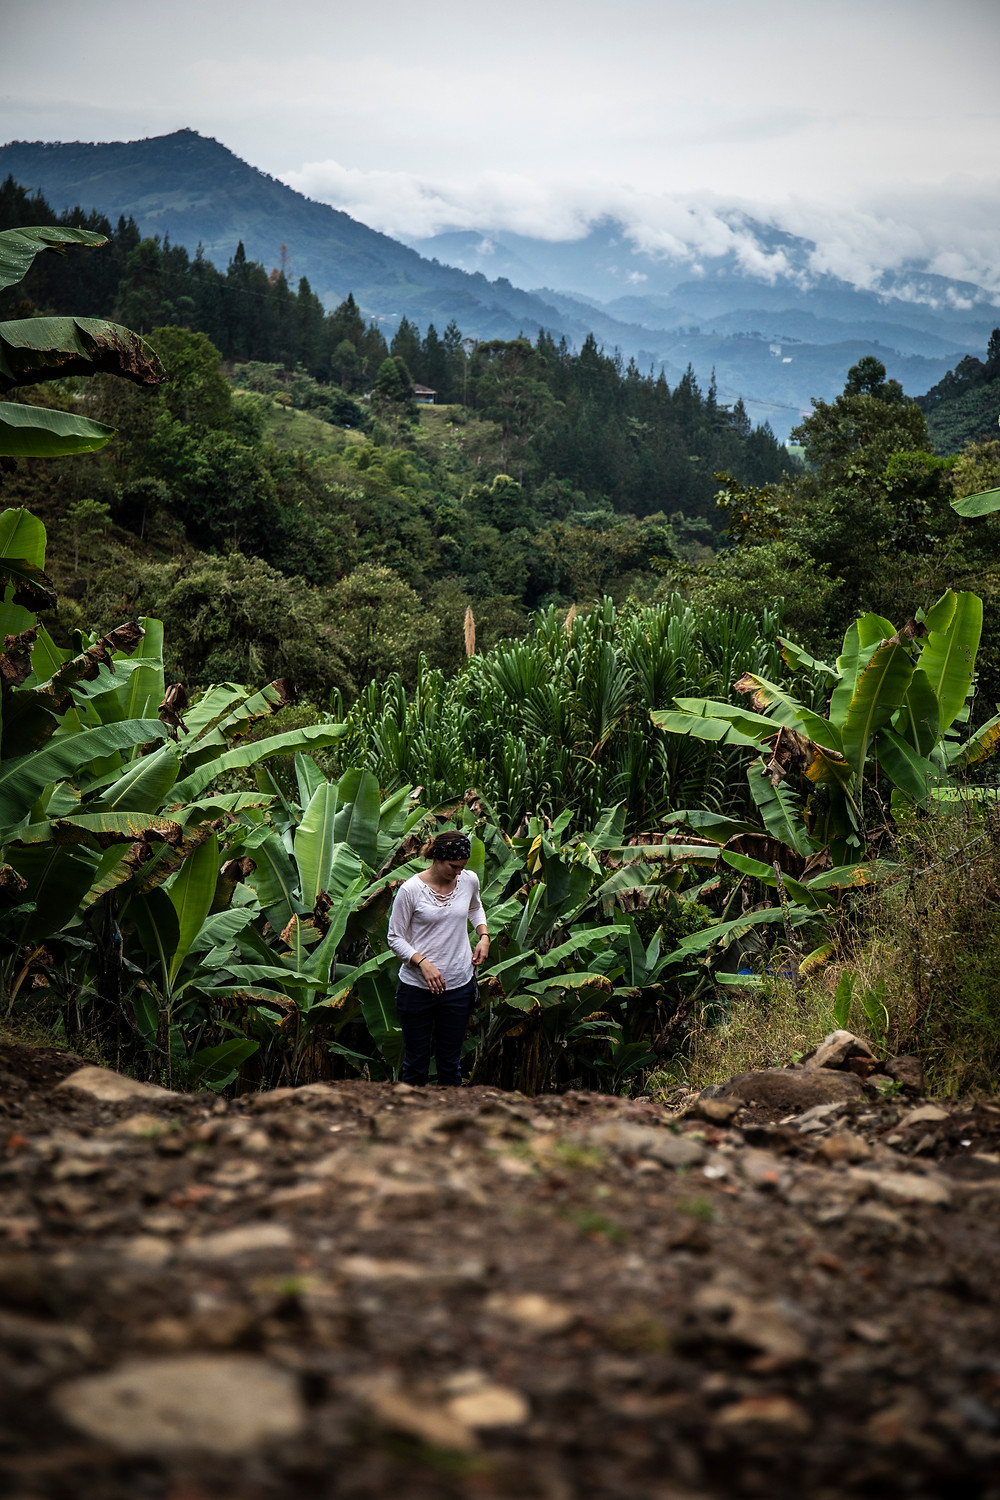 Hiking in the mountains of Jardin, Colombia.